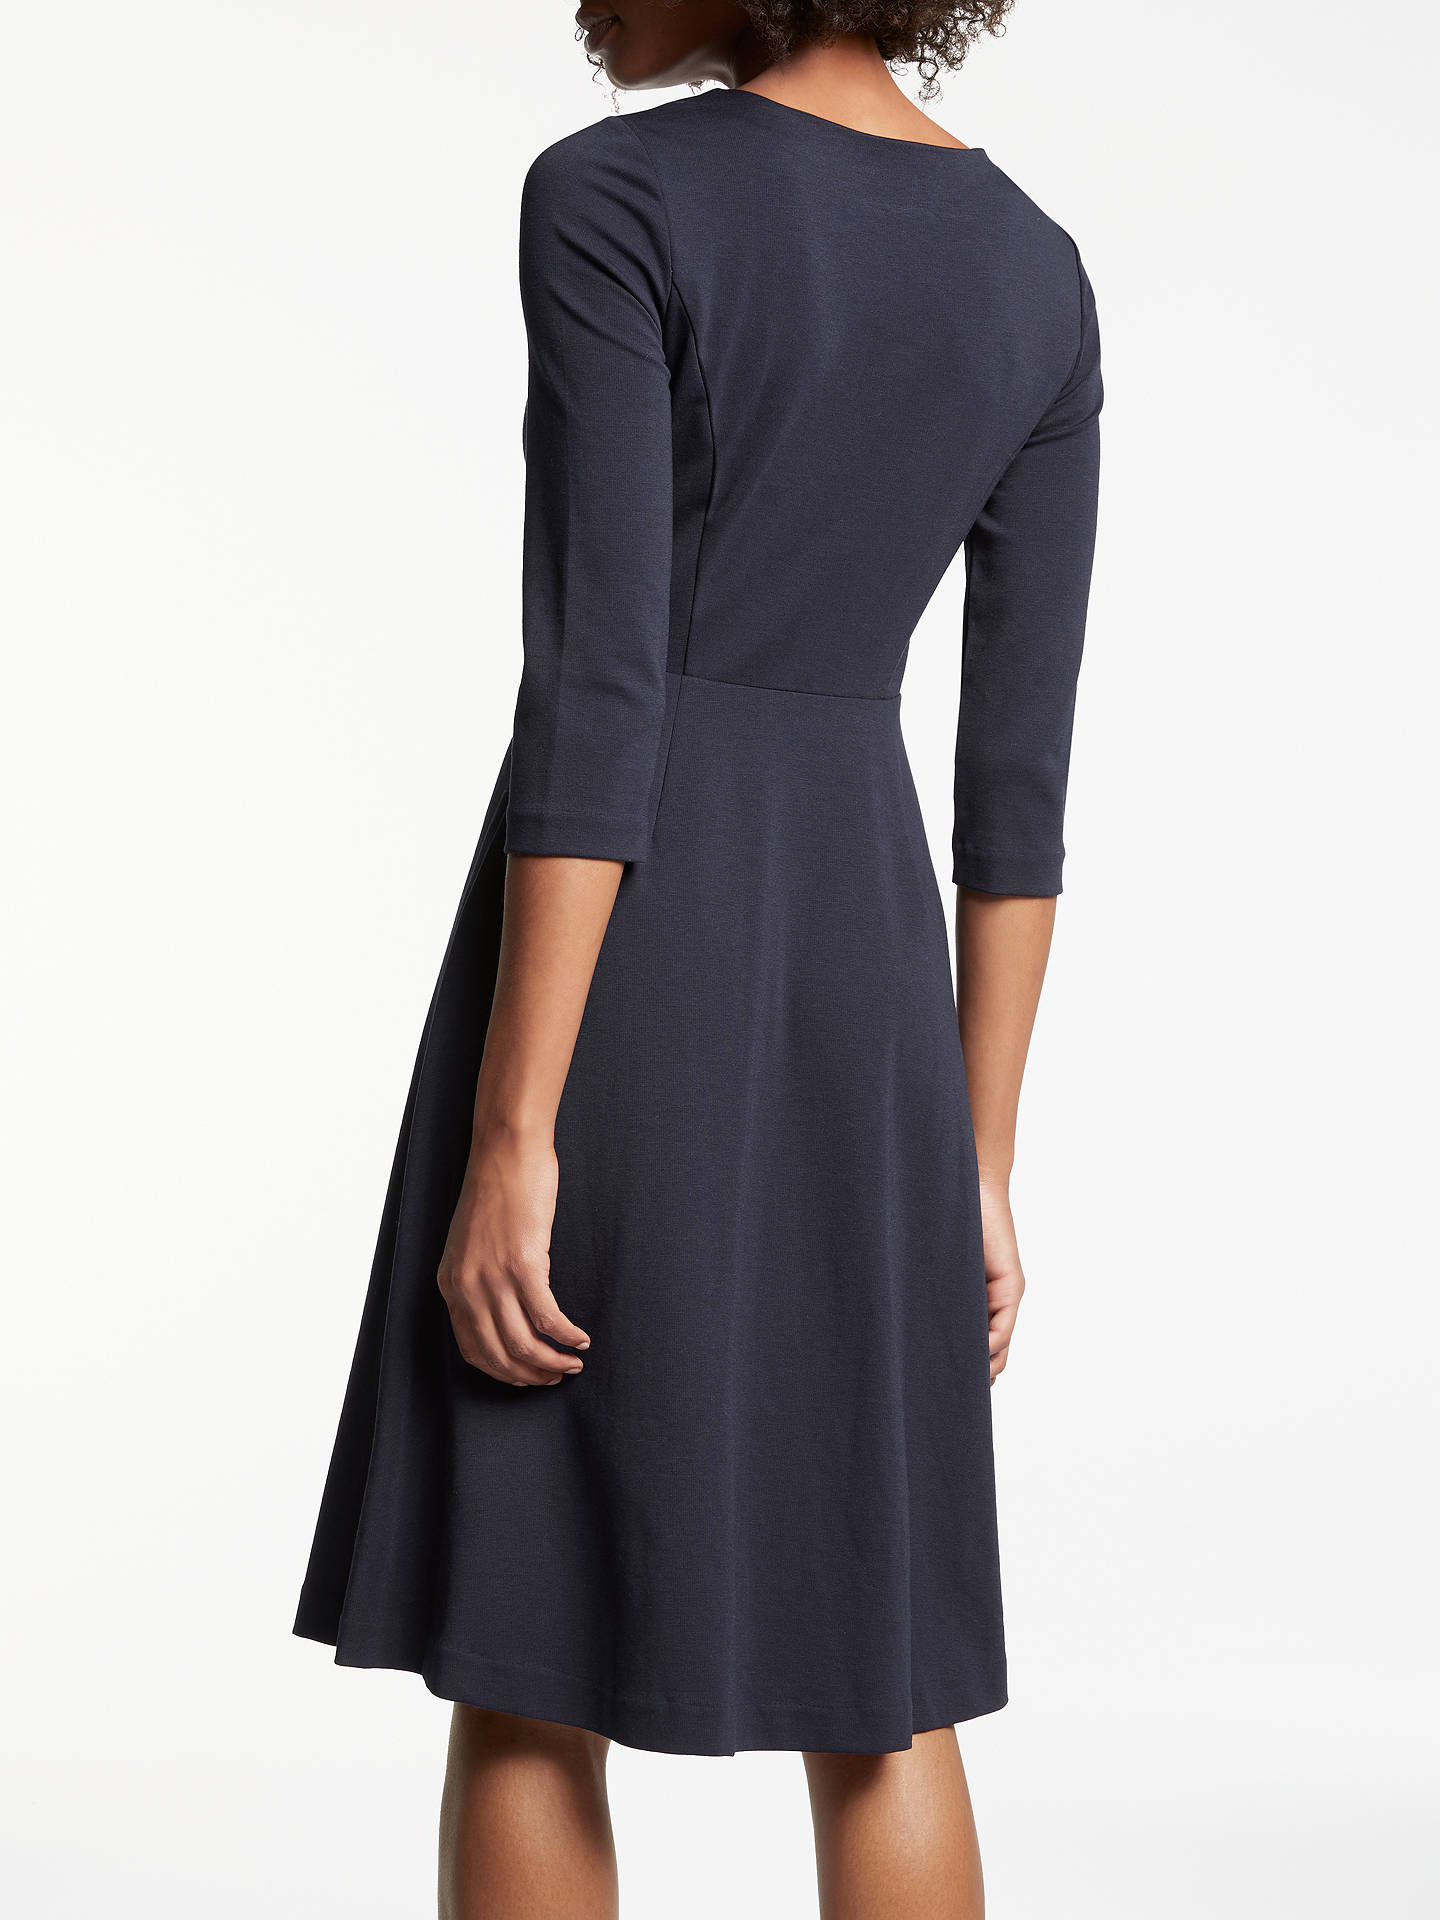 f00921461d9 ... Buy Boden Irene Ponte Dress